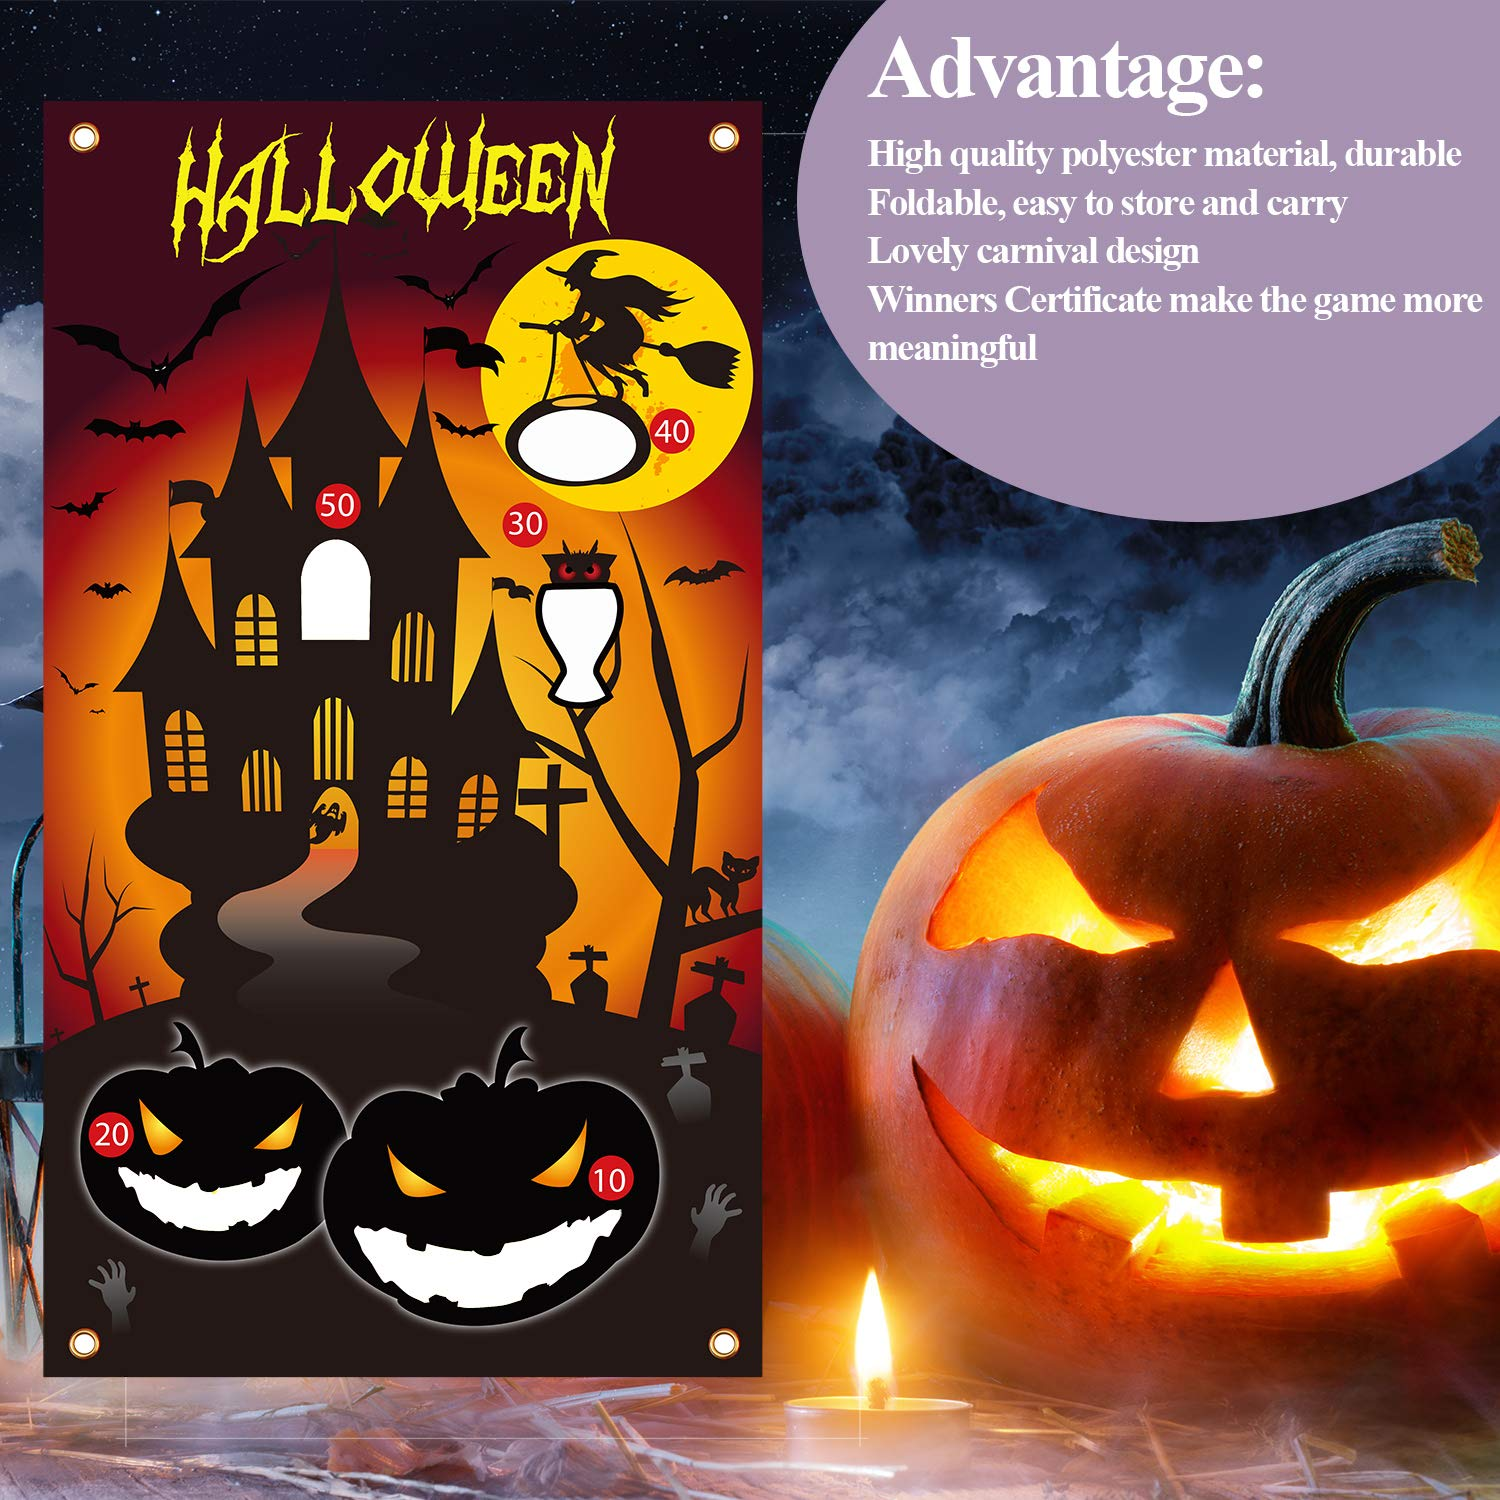 Style 1 URATOT Halloween Bean Bag Toss Game with 4 Bean Bag and 10 Winners Certificate for Families with Kids Travel Games Halloween Party Decorations Supplies